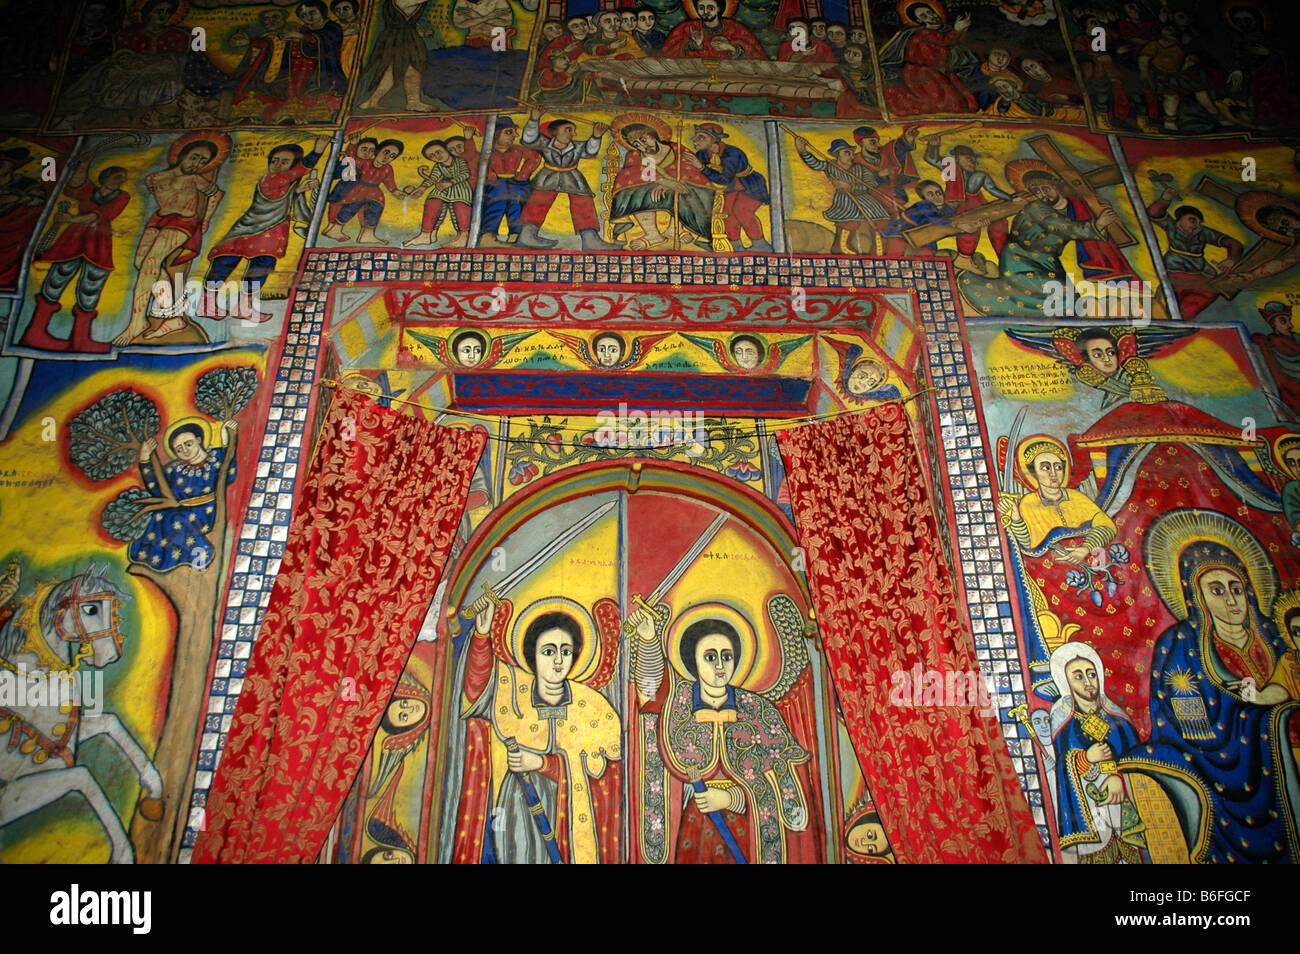 Colourful wall painting with Arch Angel, Ukra Kidane Mekret Abbey, Tana Lake, near Bahir Dar, Ethiopia, Africa - Stock Image